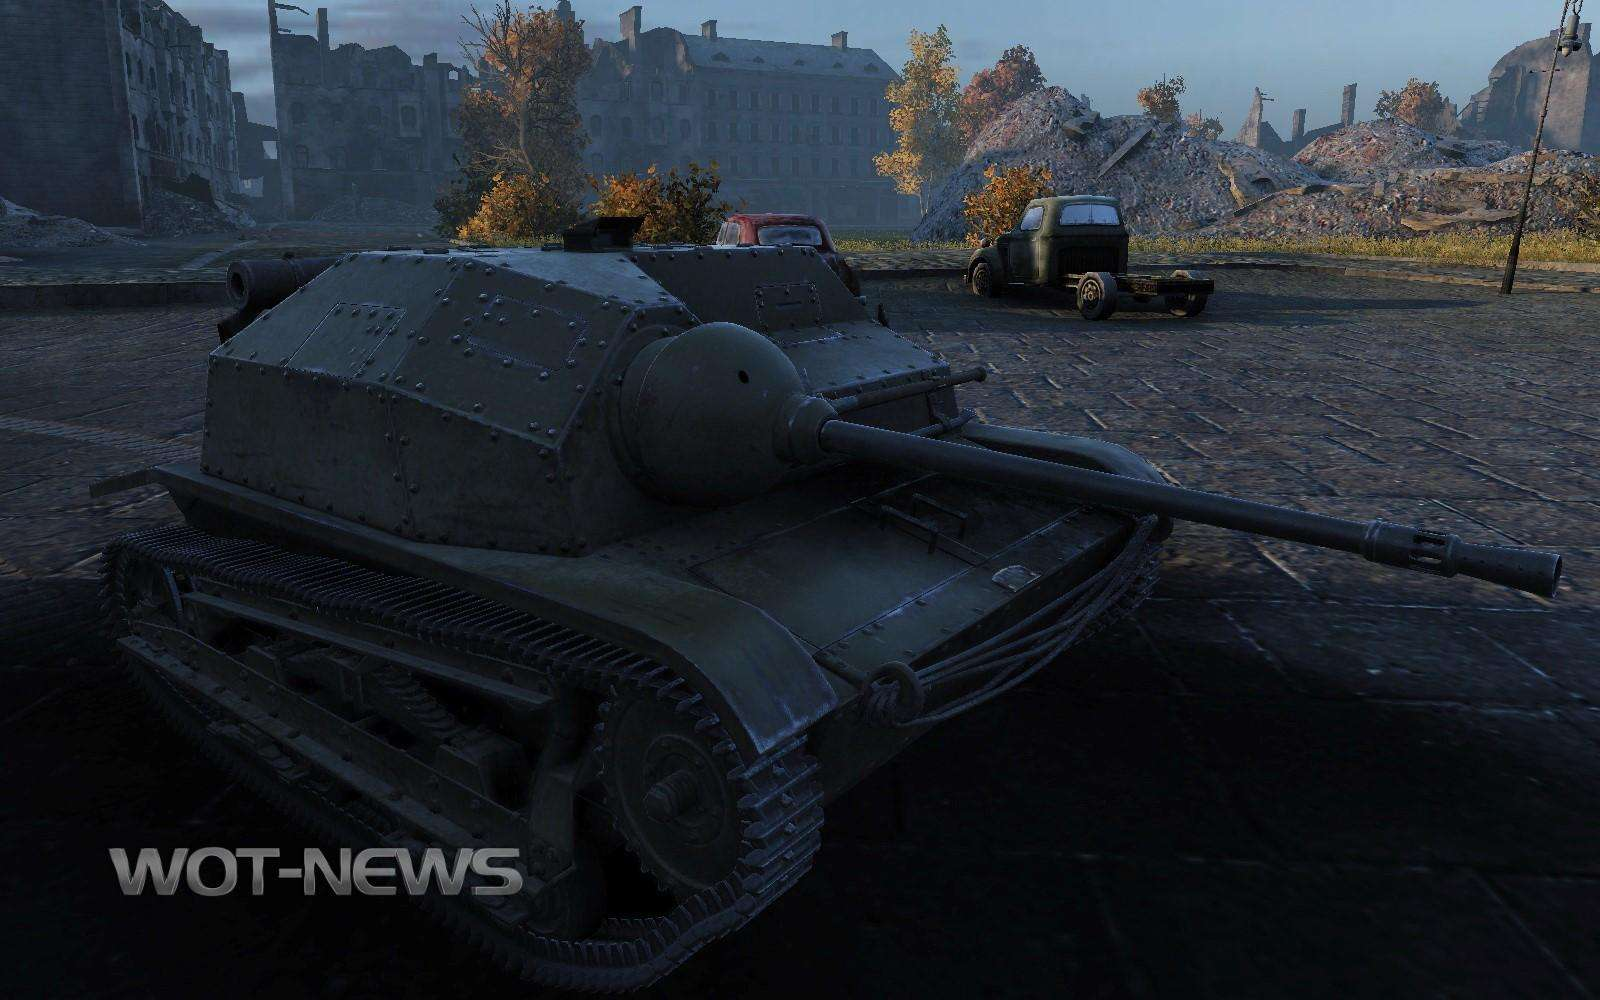 World of Tanks news free tank game, official WoT website